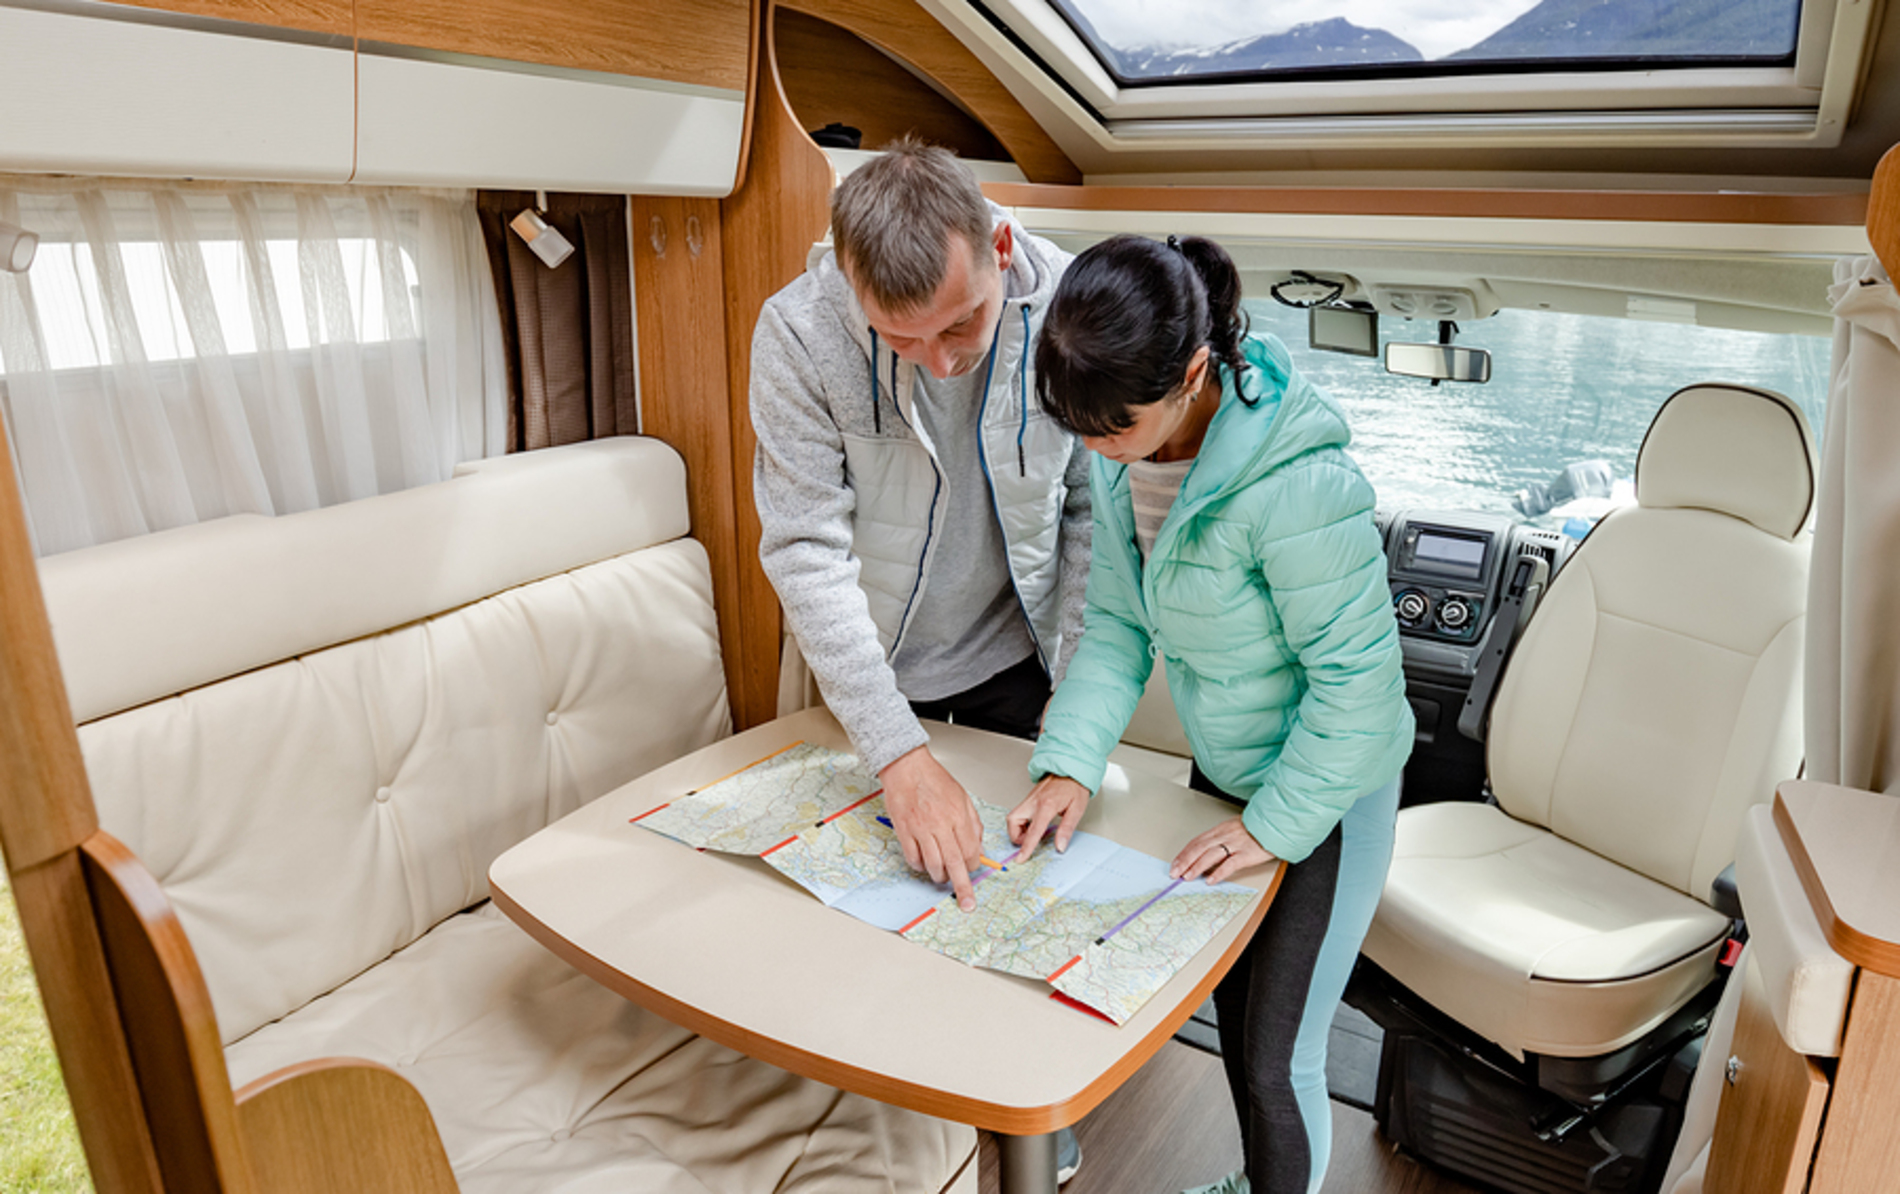 Couple looking at a map inside a rv.